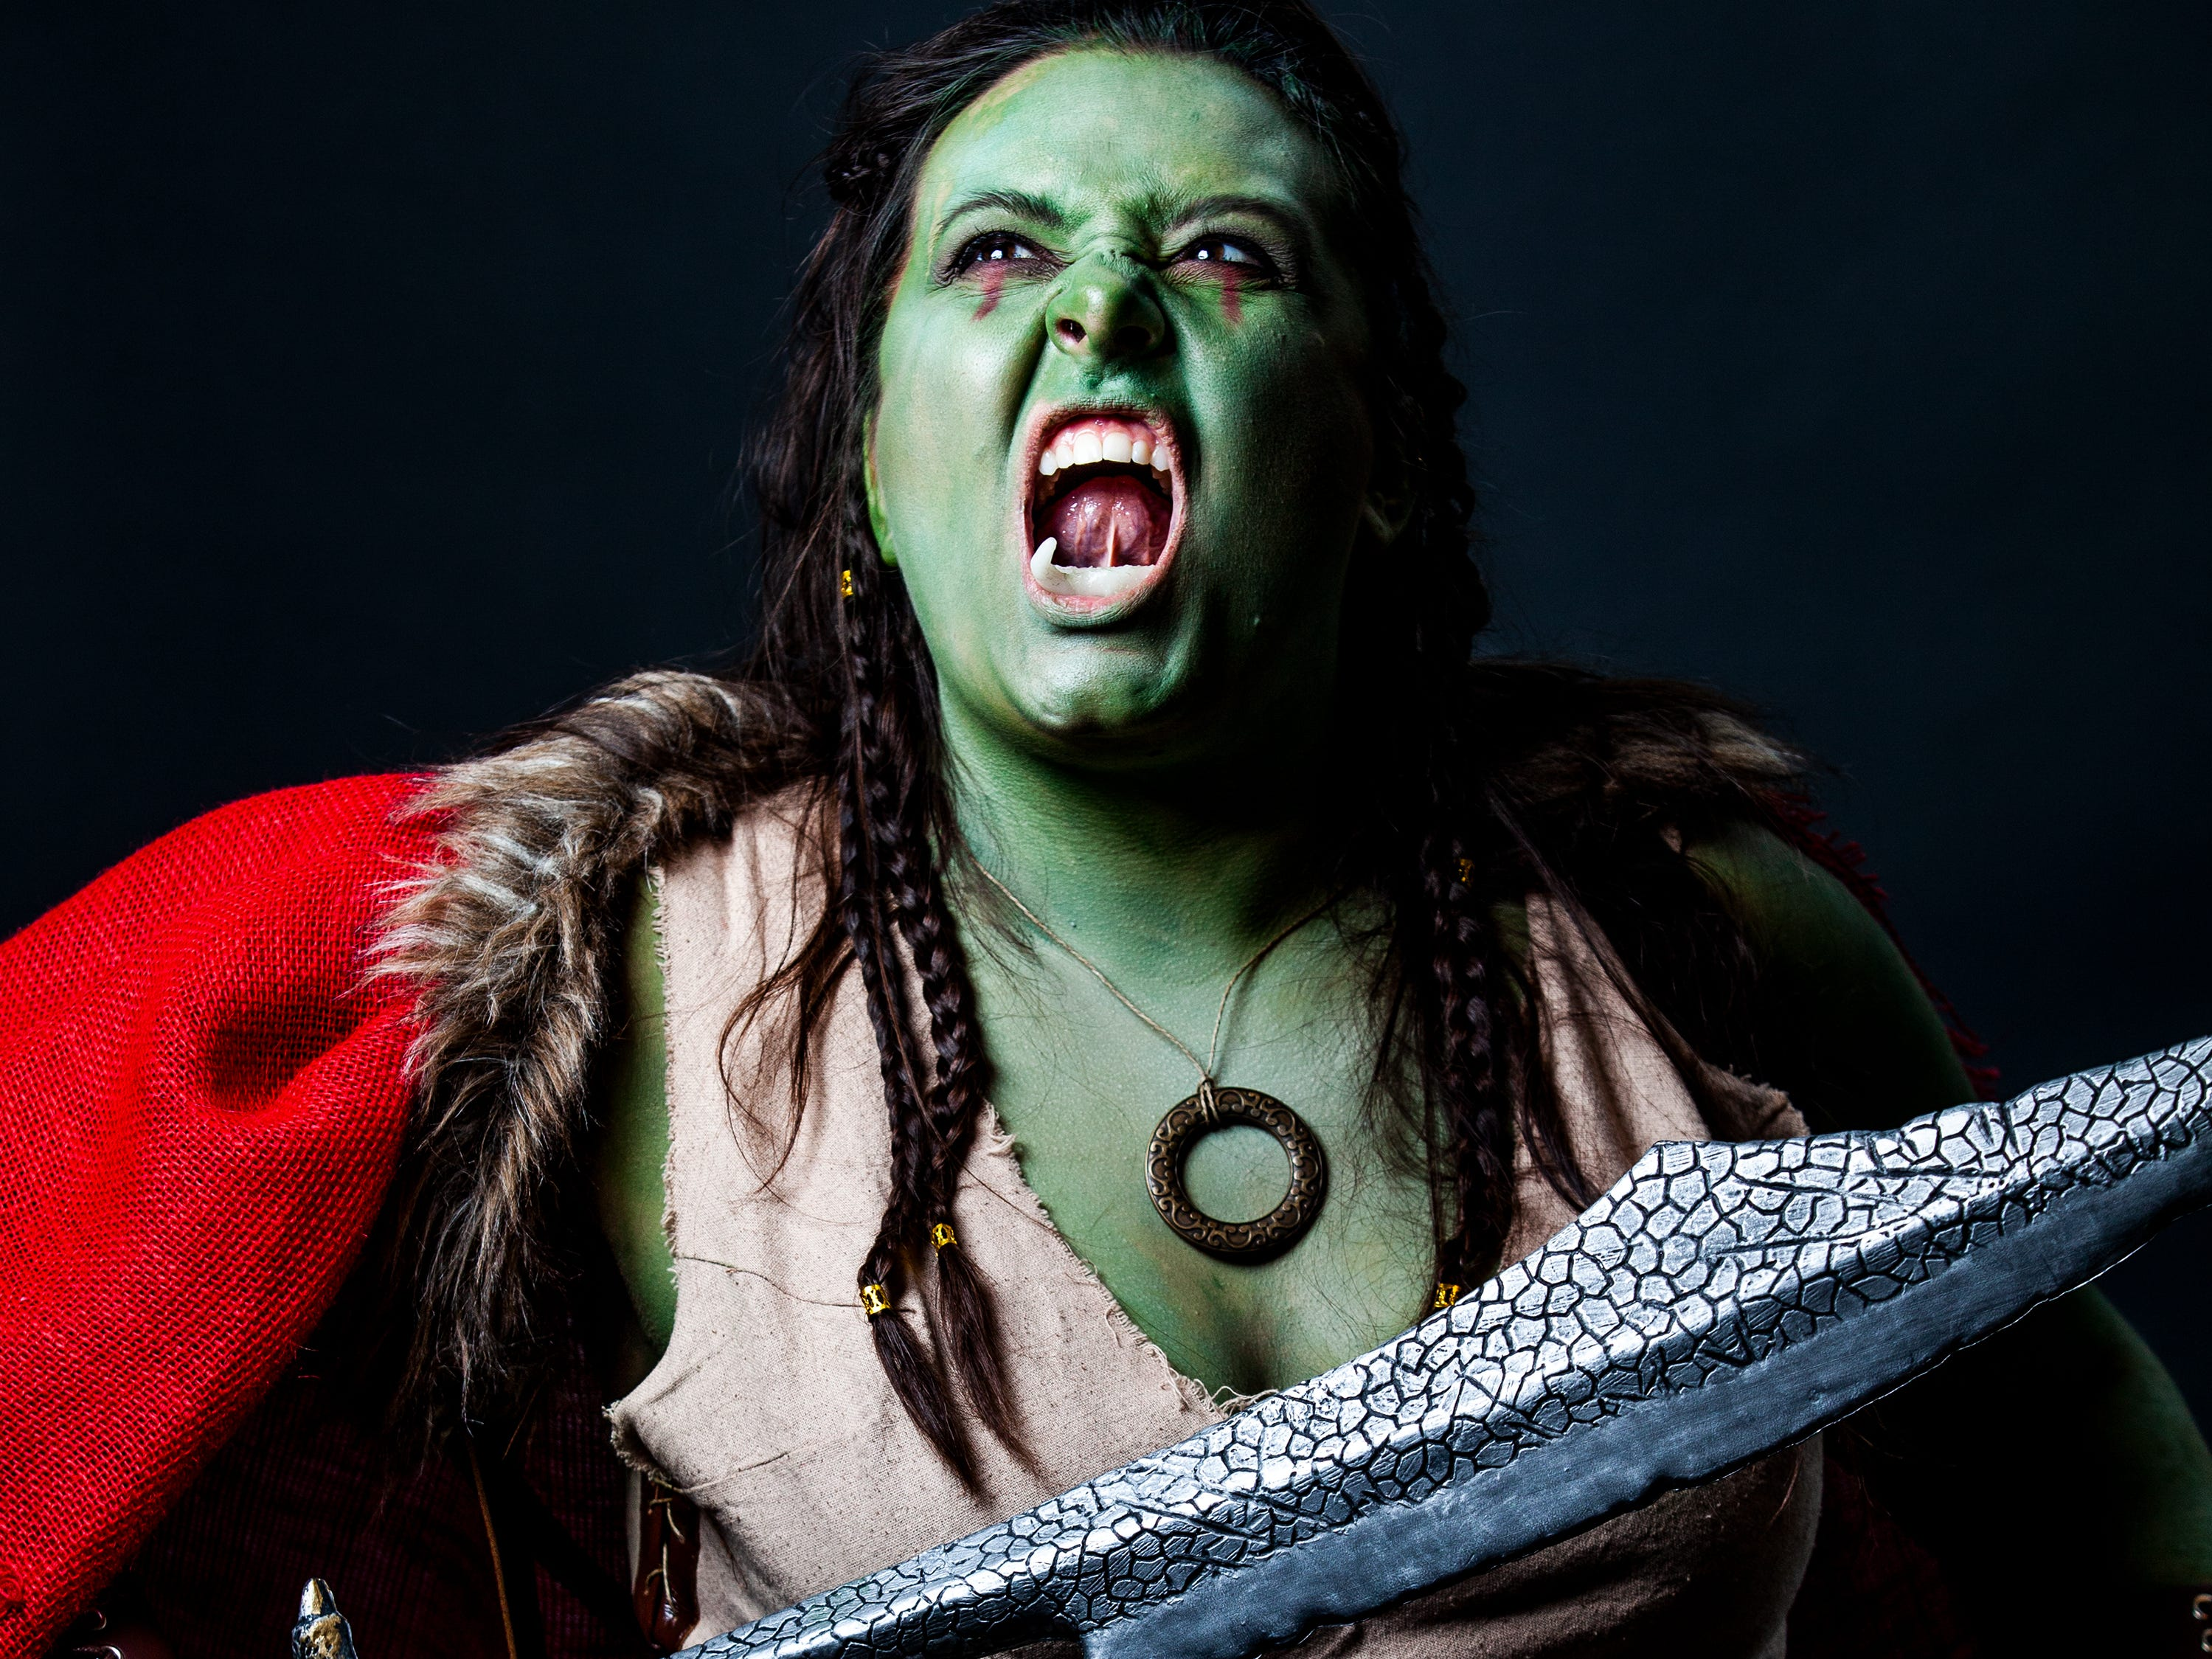 Amber poses as an Orc for the Louisville Supercon at the Kentucky International Convention Center on Saturday, Dec. 1, 2018.